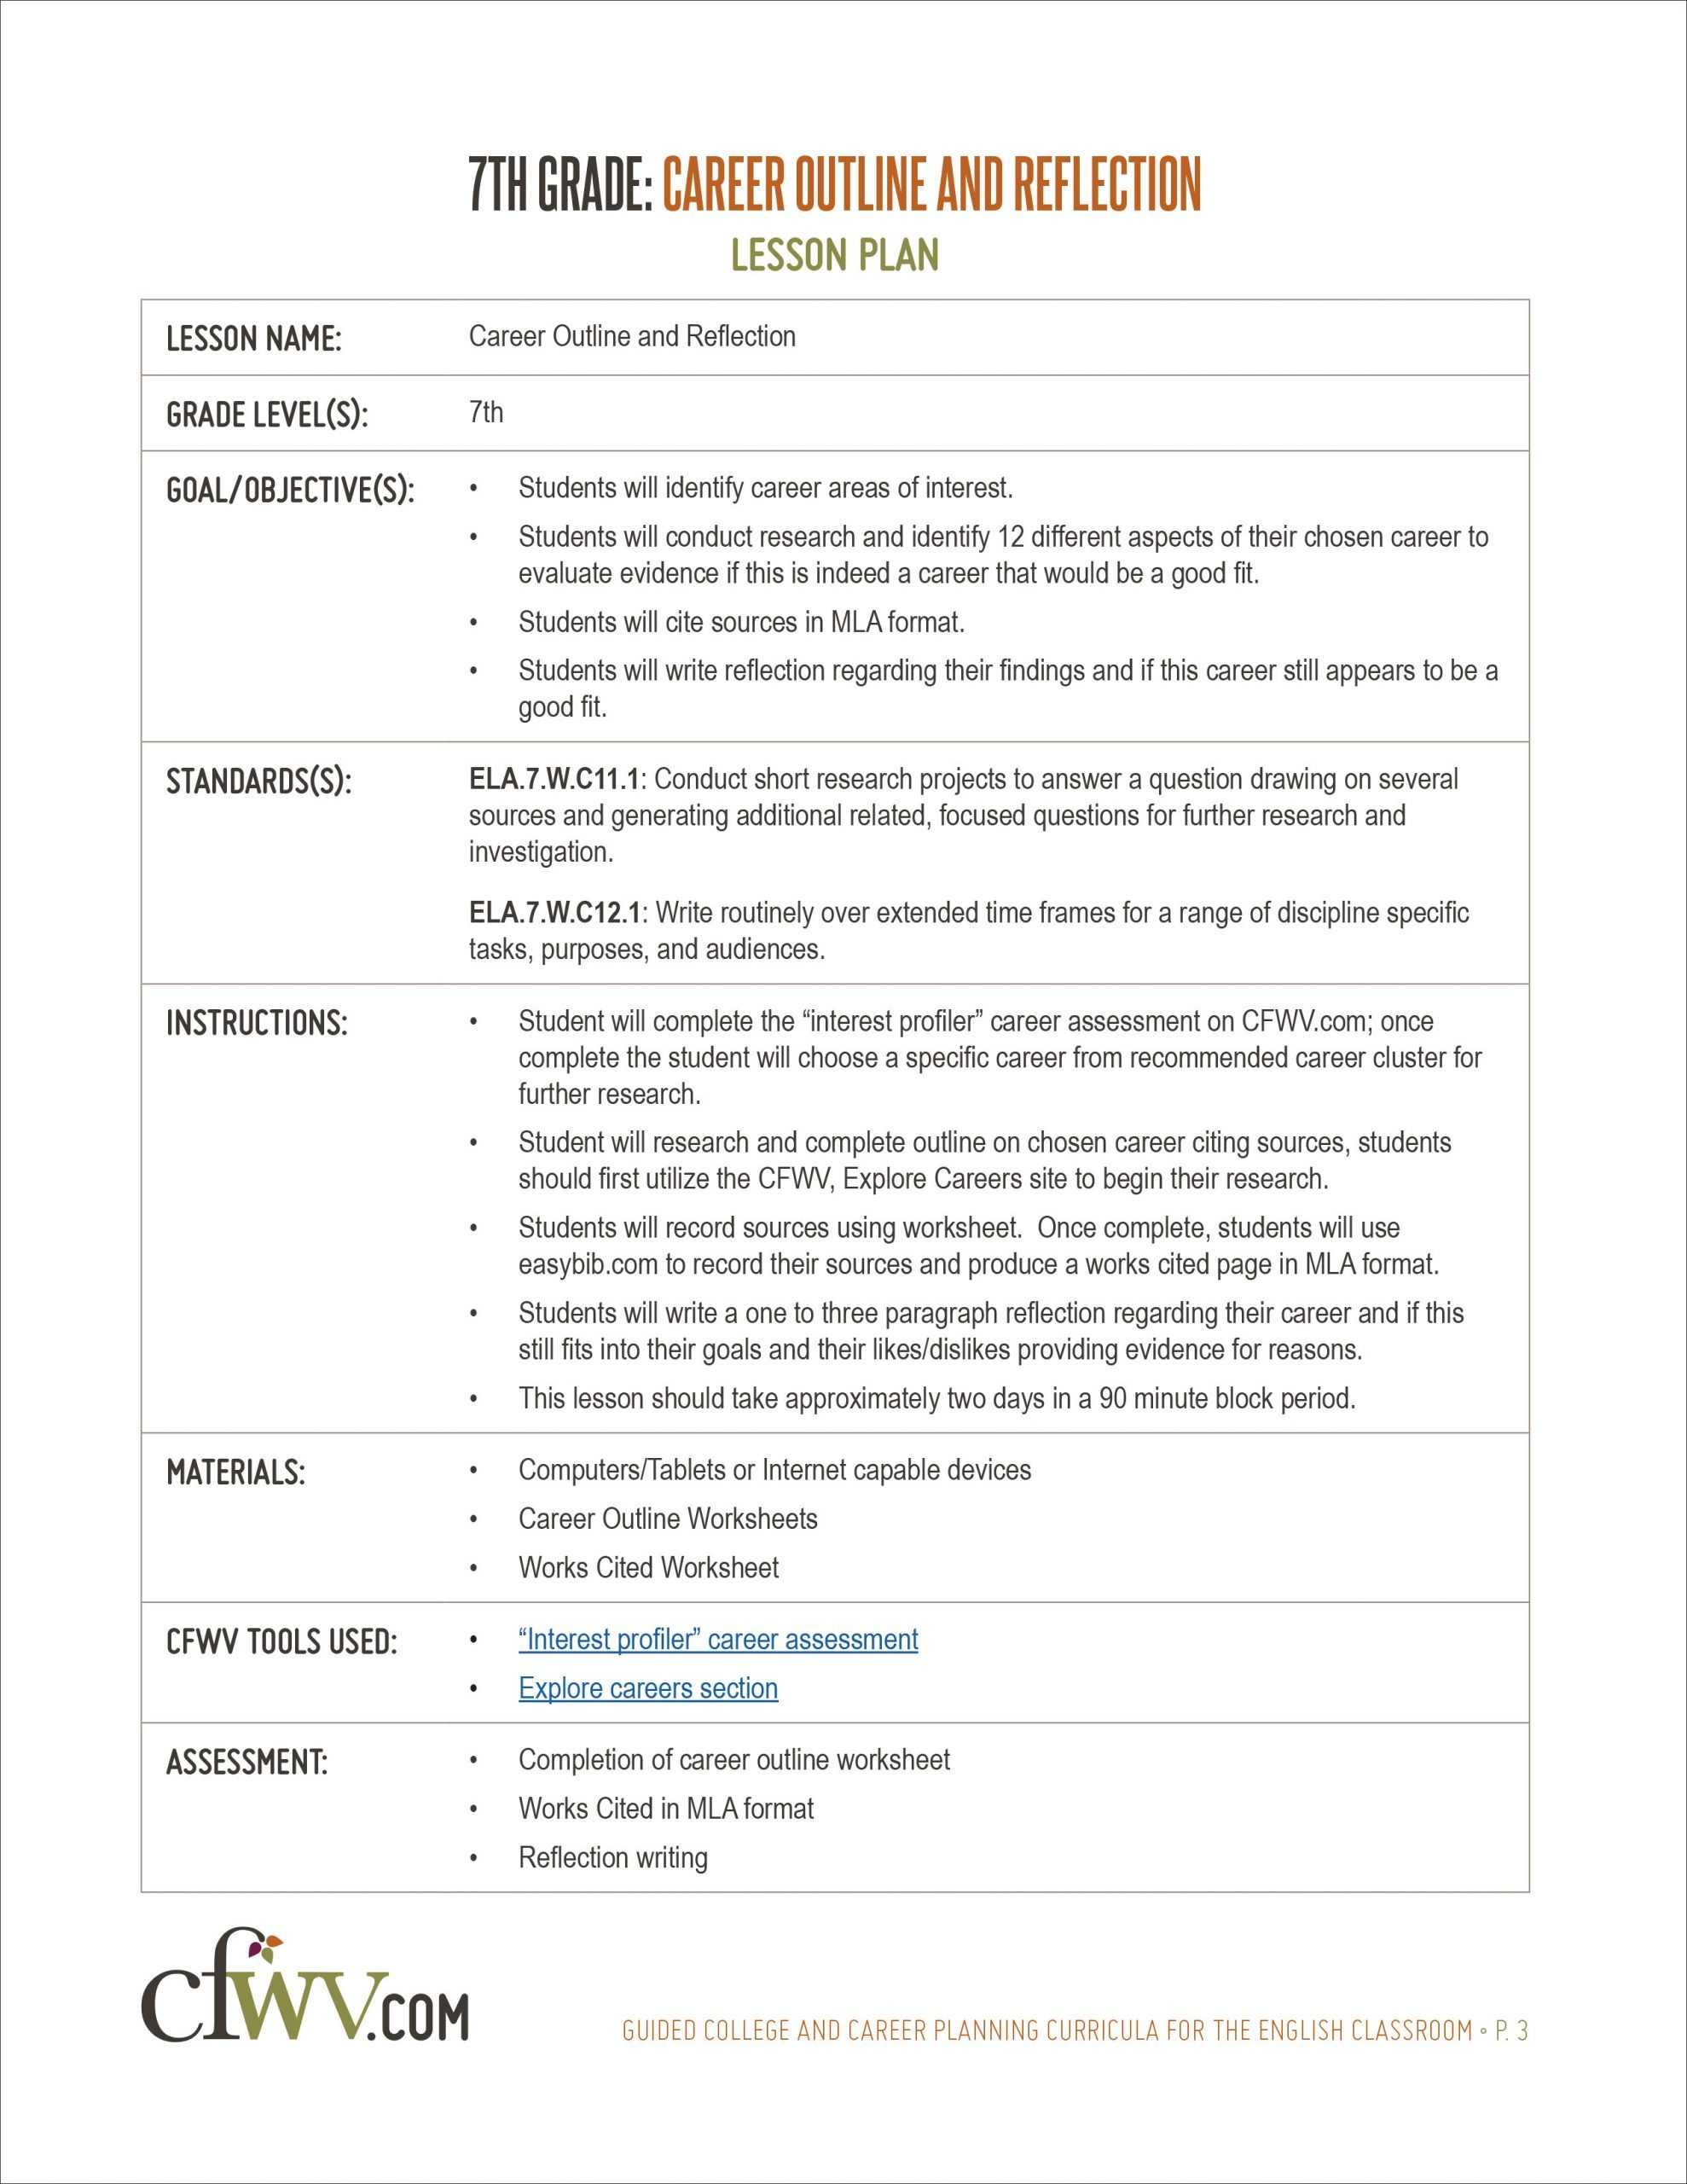 Career Worksheets for Middle School College and Career Planning English Curriculum toolkit